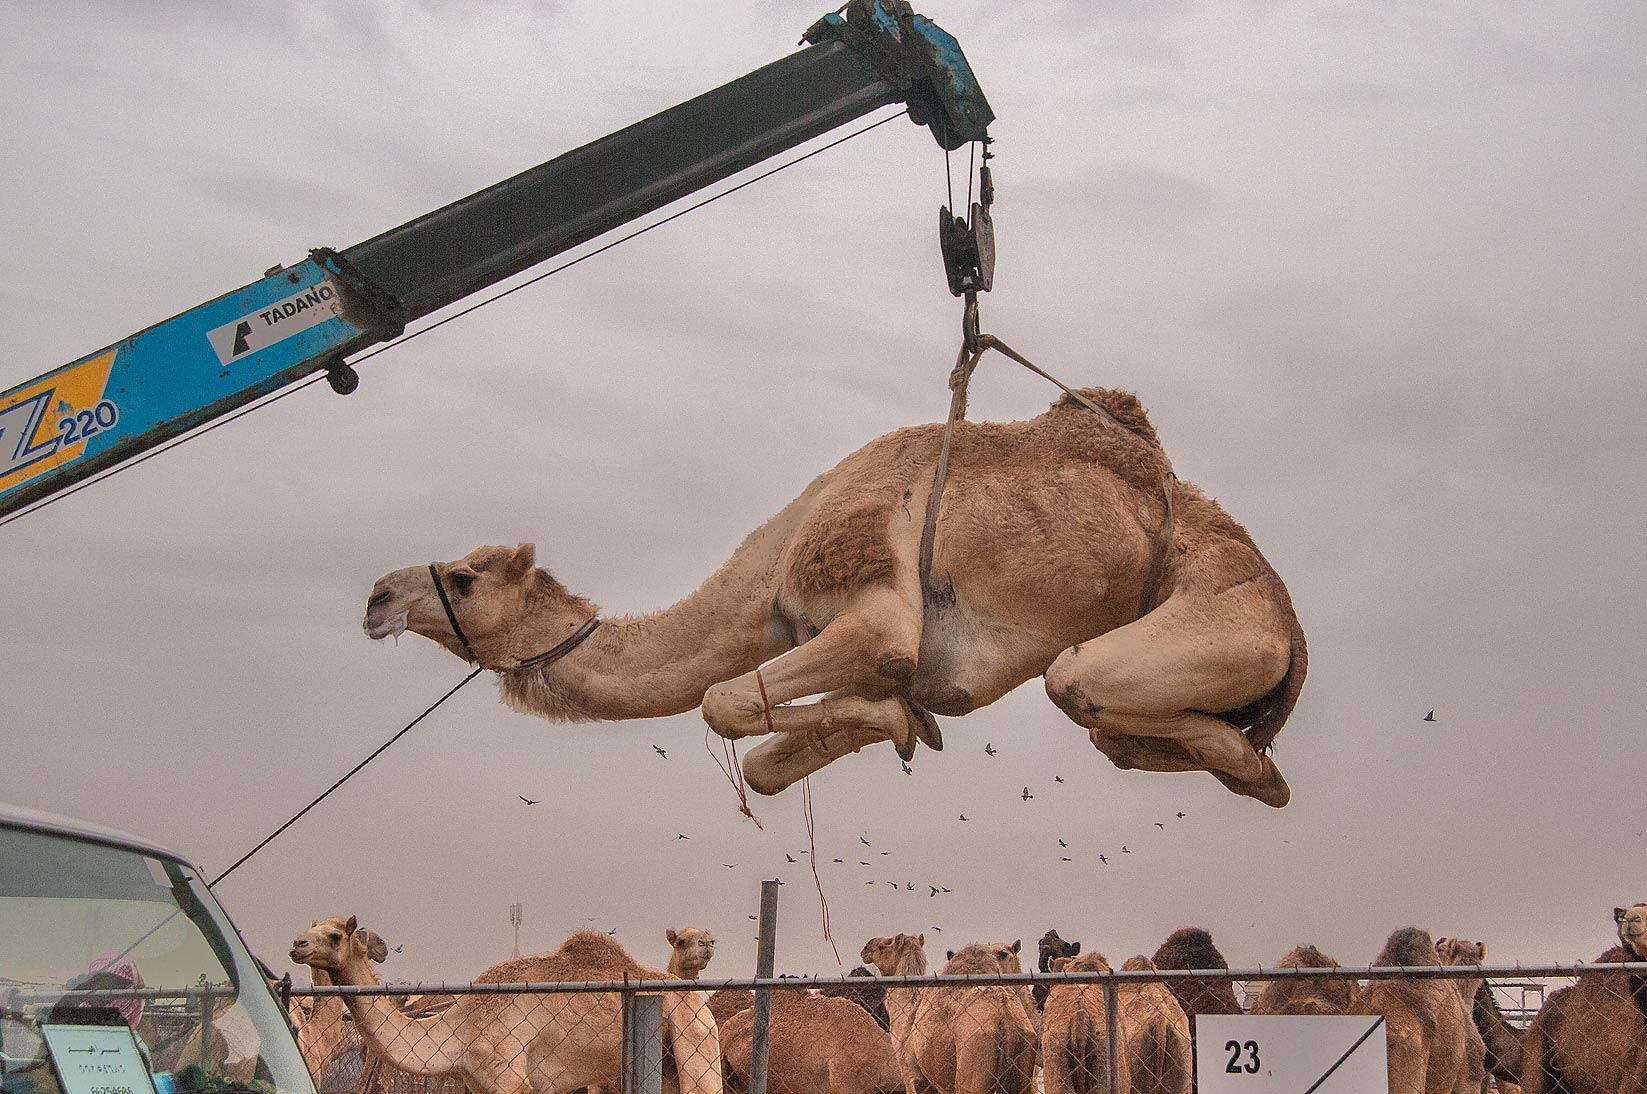 Camel lifted by hydraulic crane in livestock markets, Abu Hamour area. Doha, Qatar